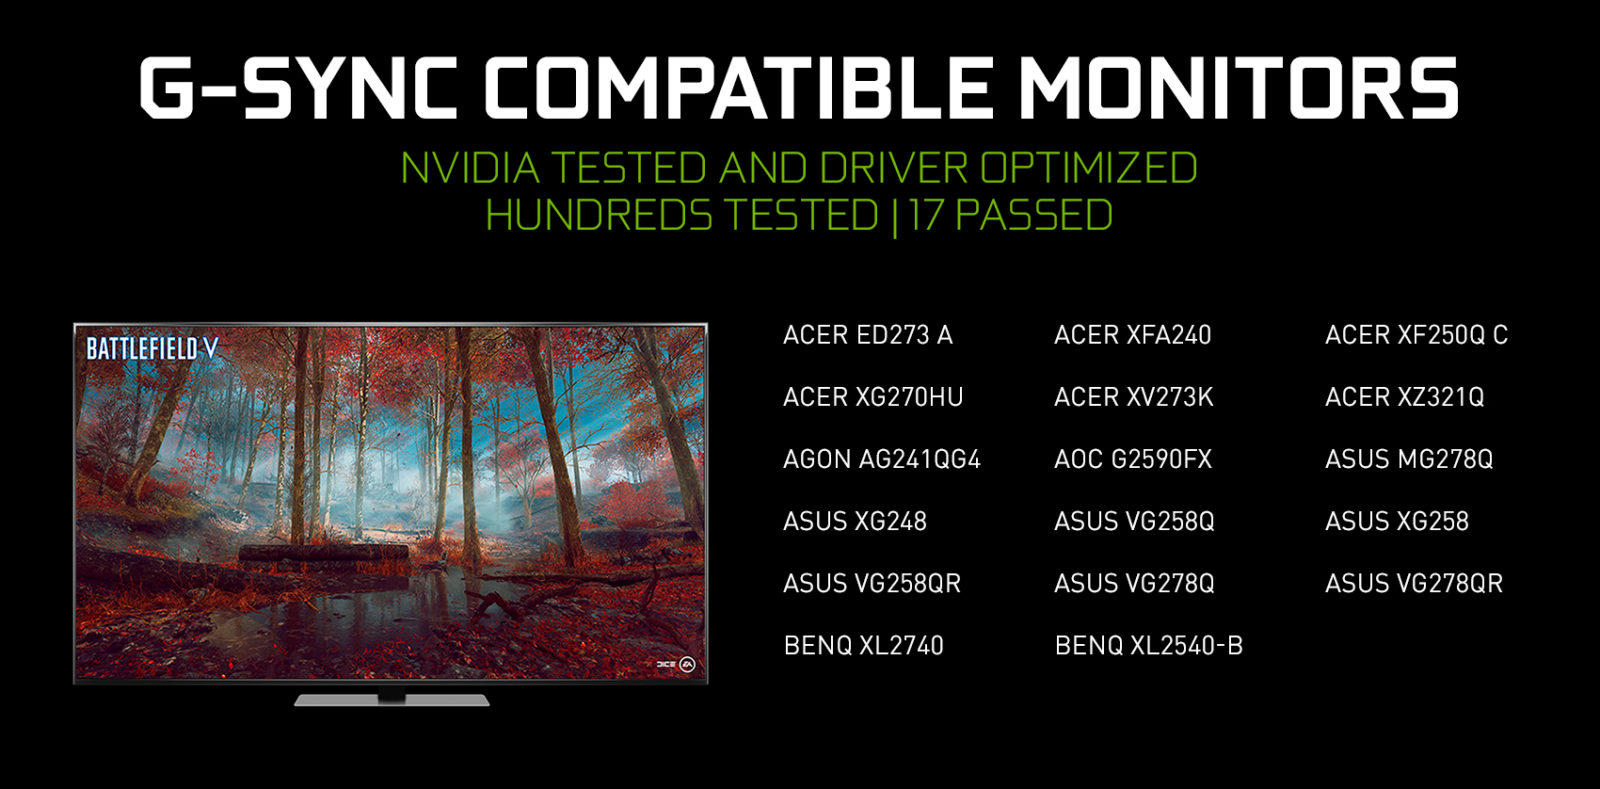 geforce-g-sync-compatible-monitors-article-850-2x-1600x789.jpg